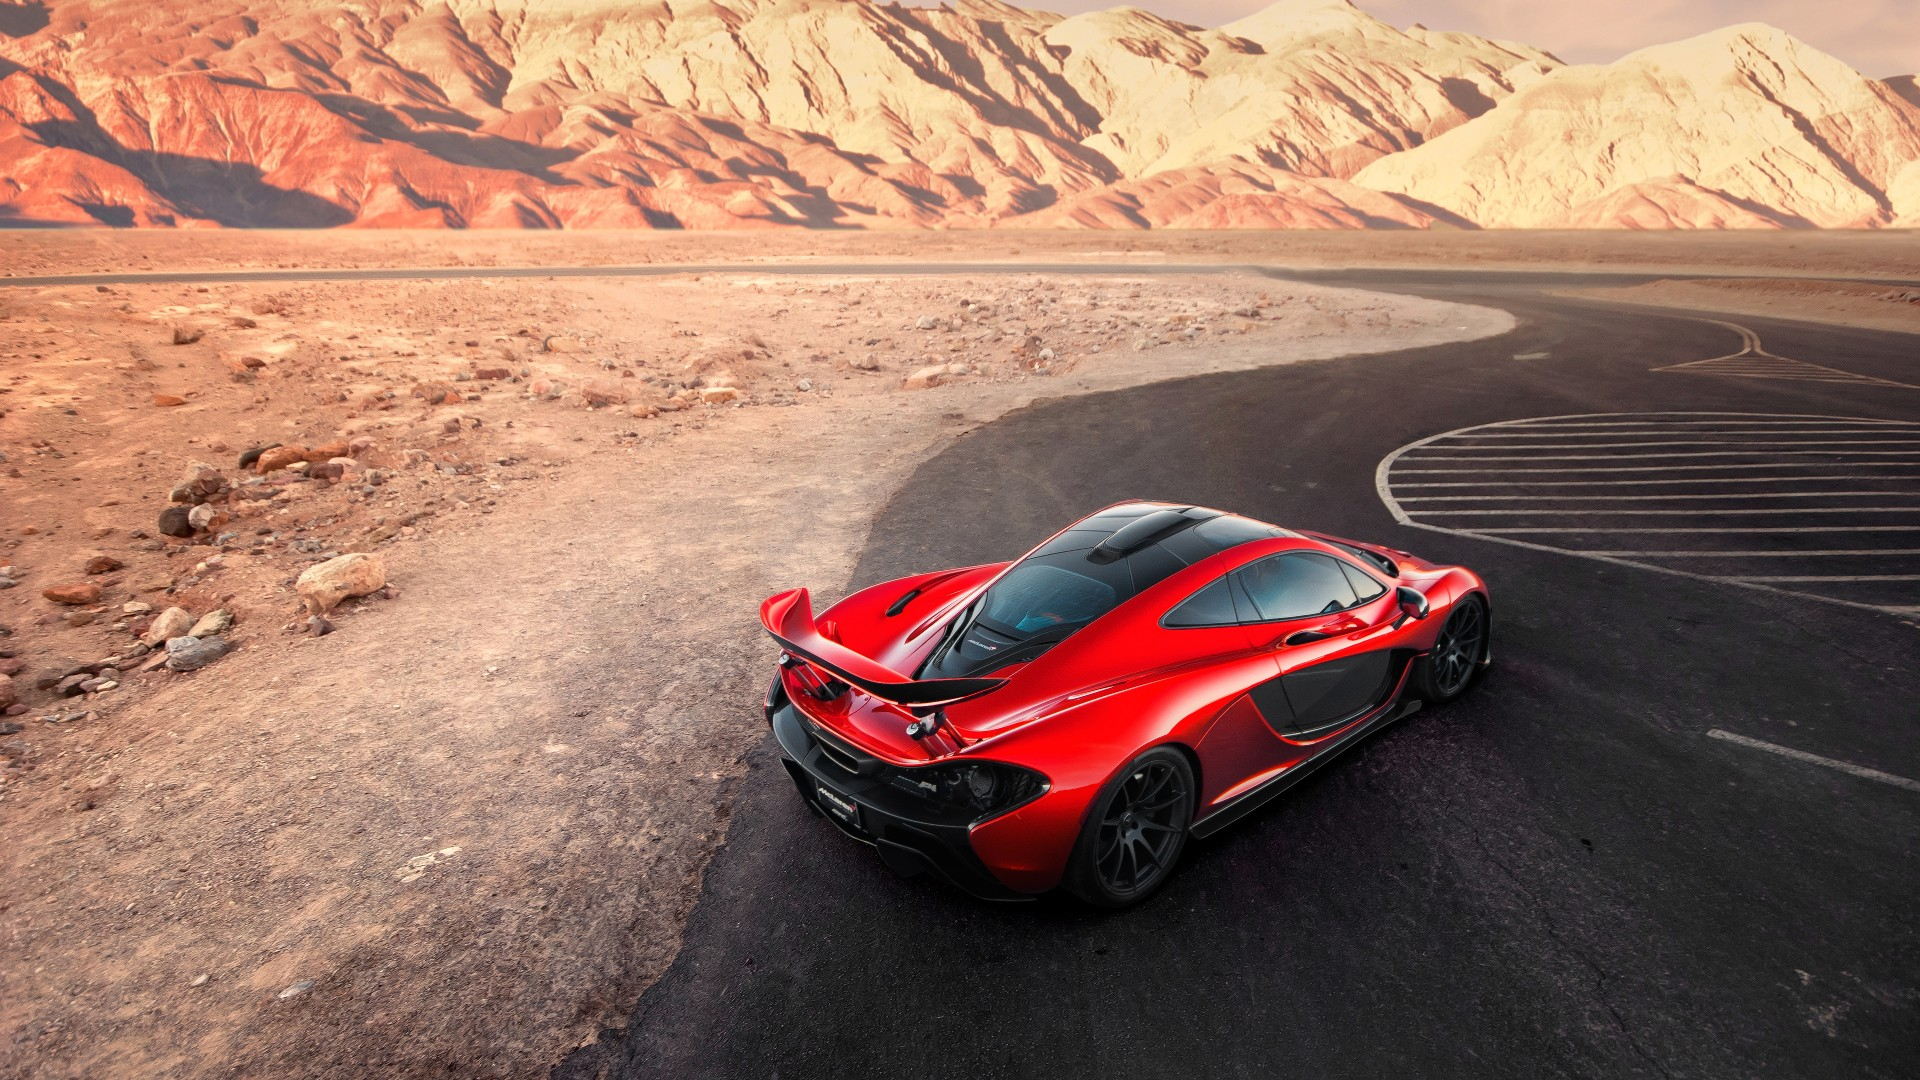 McLaren P1 Death Valley Wallpaper | HD Car Wallpapers | ID ...